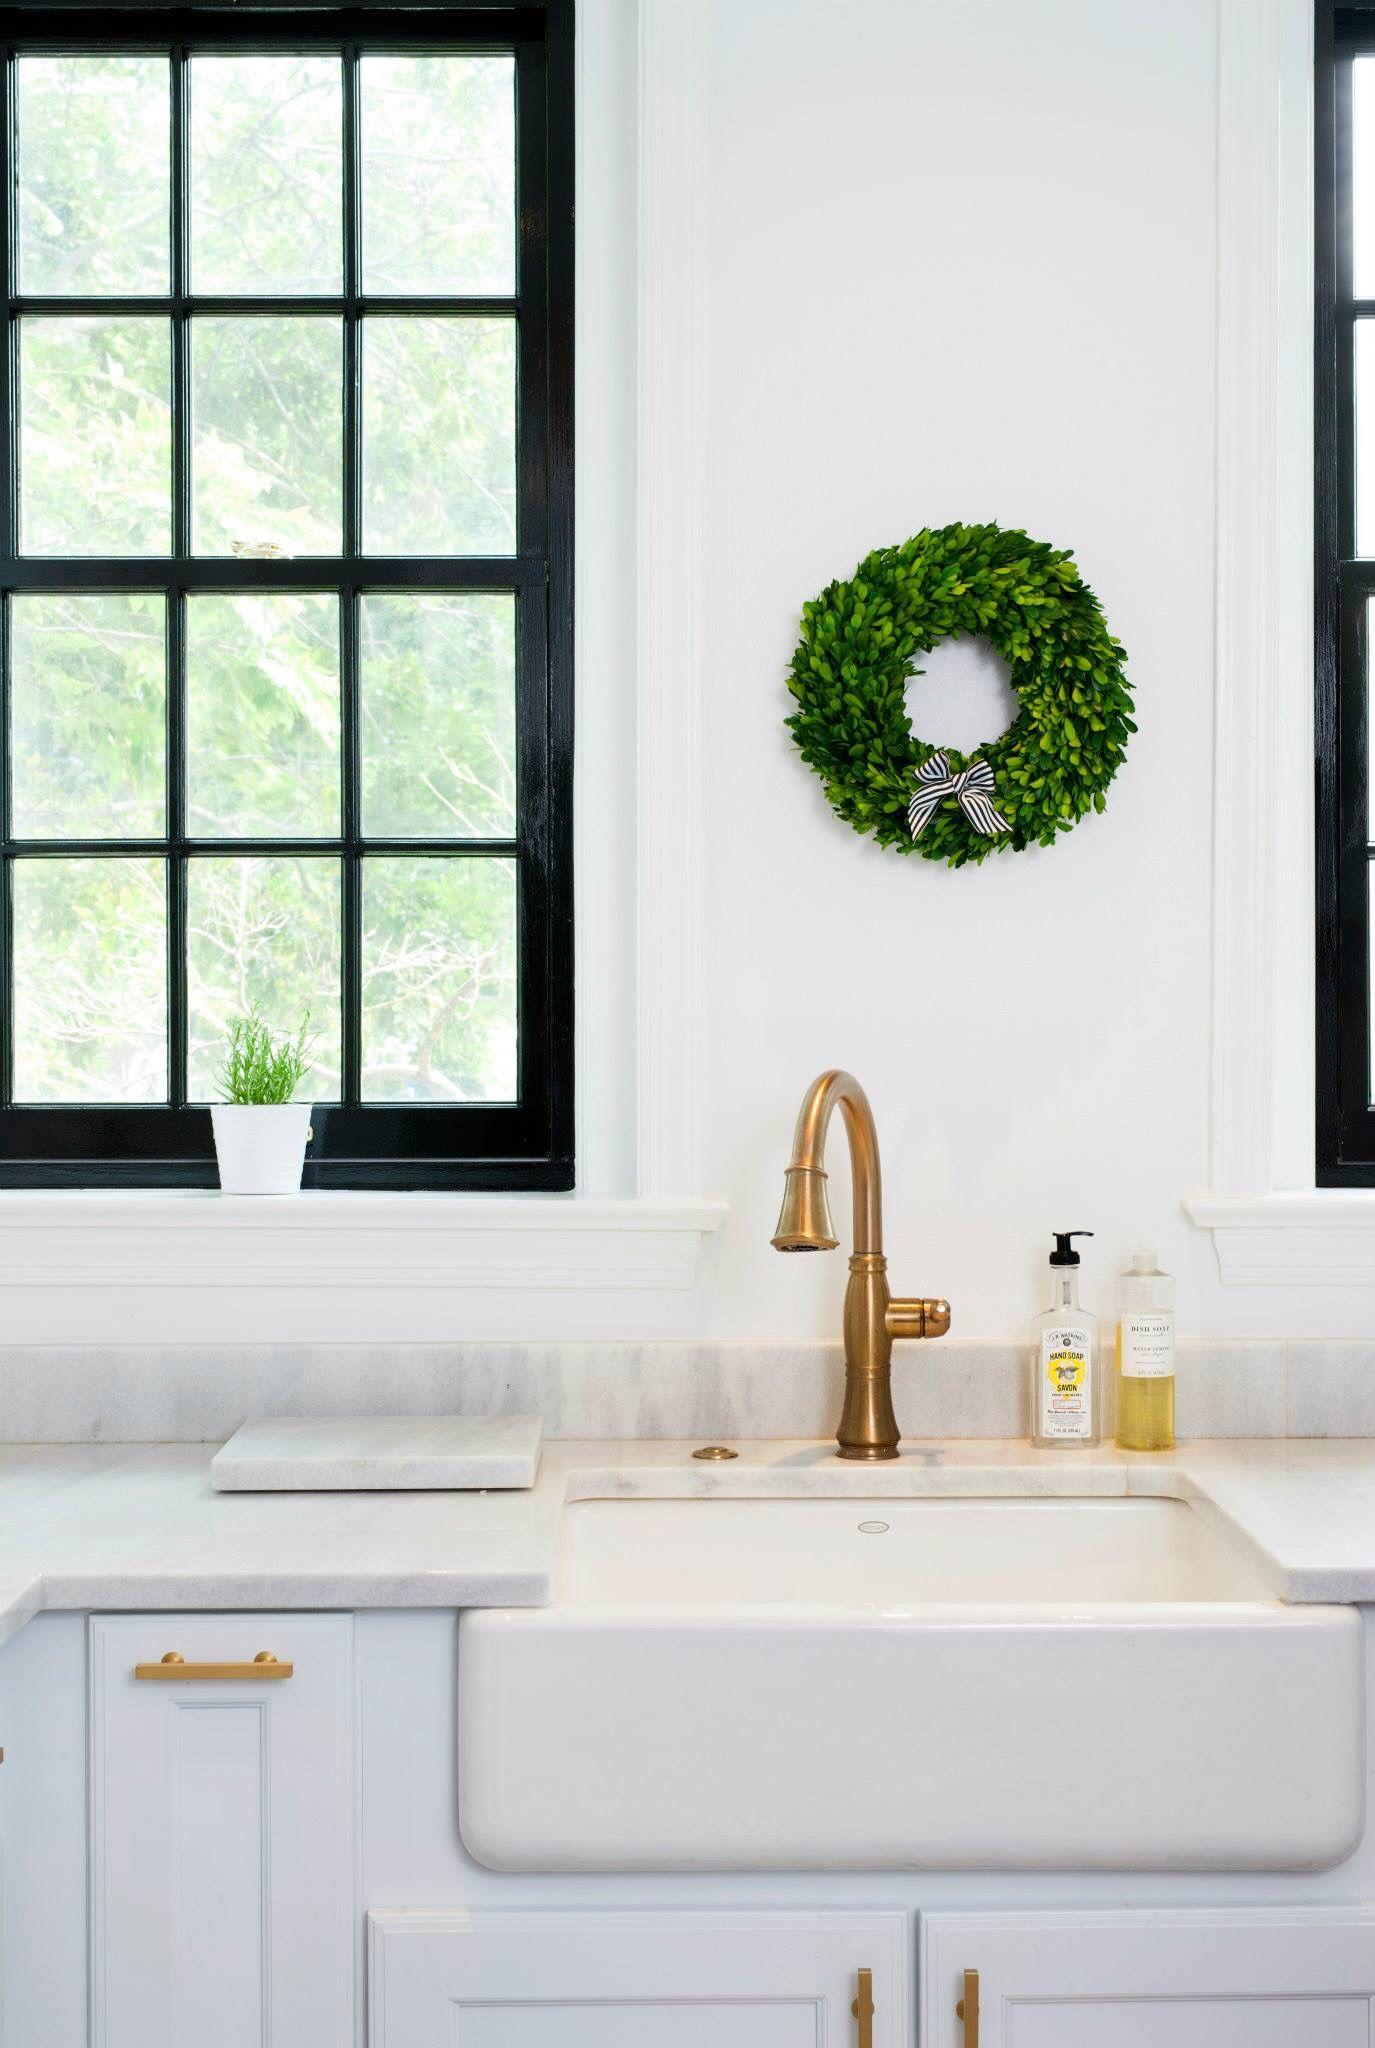 Kohler Whitehaven Farmhouse Sink Accessories Kohler Whitehaven Farmhouse Sink Black Window Panes